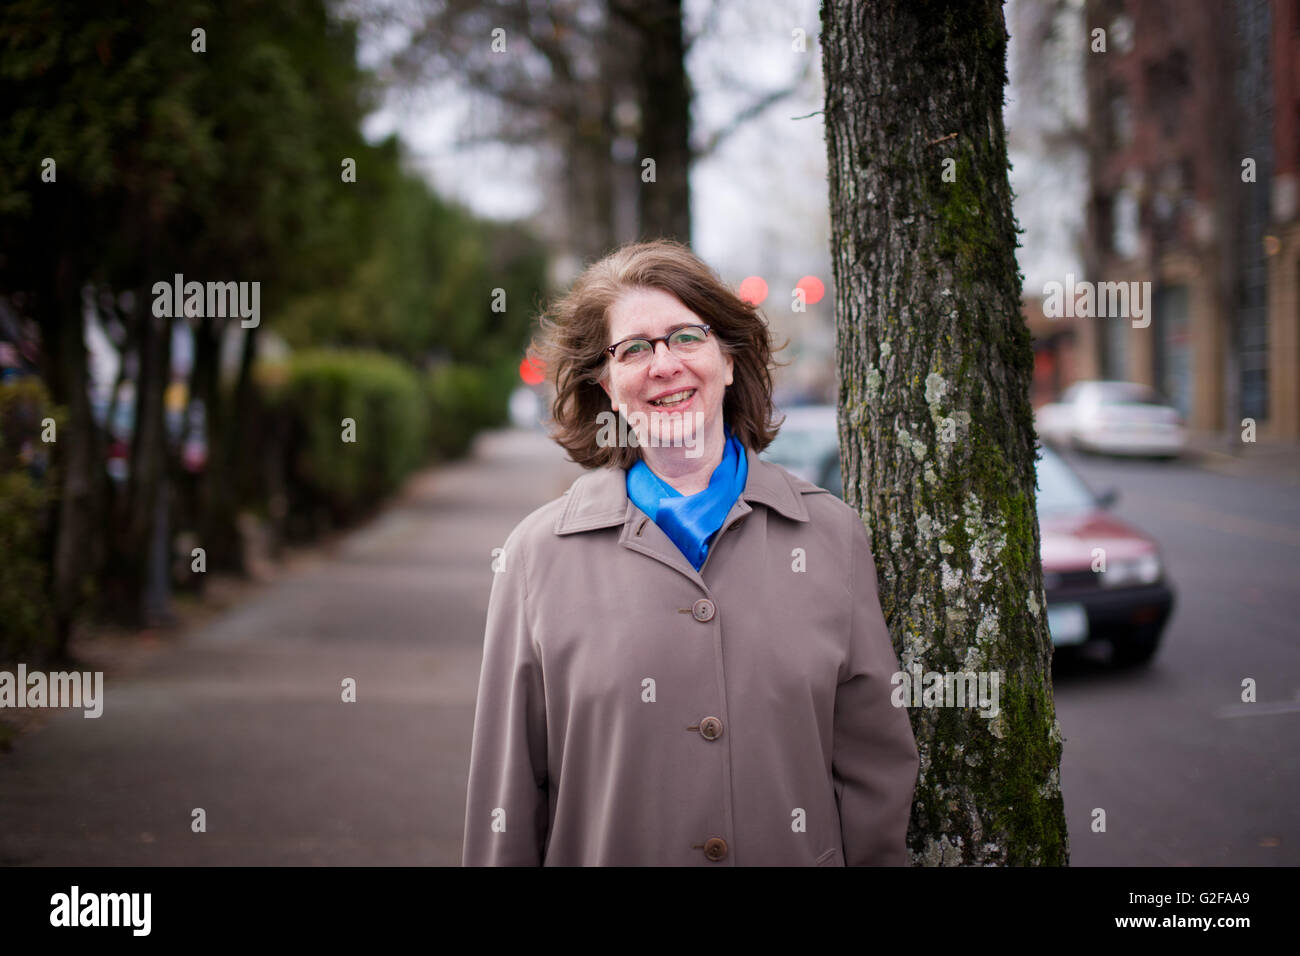 Smiling Mid-Adult Woman in Trench Coat - Stock Image